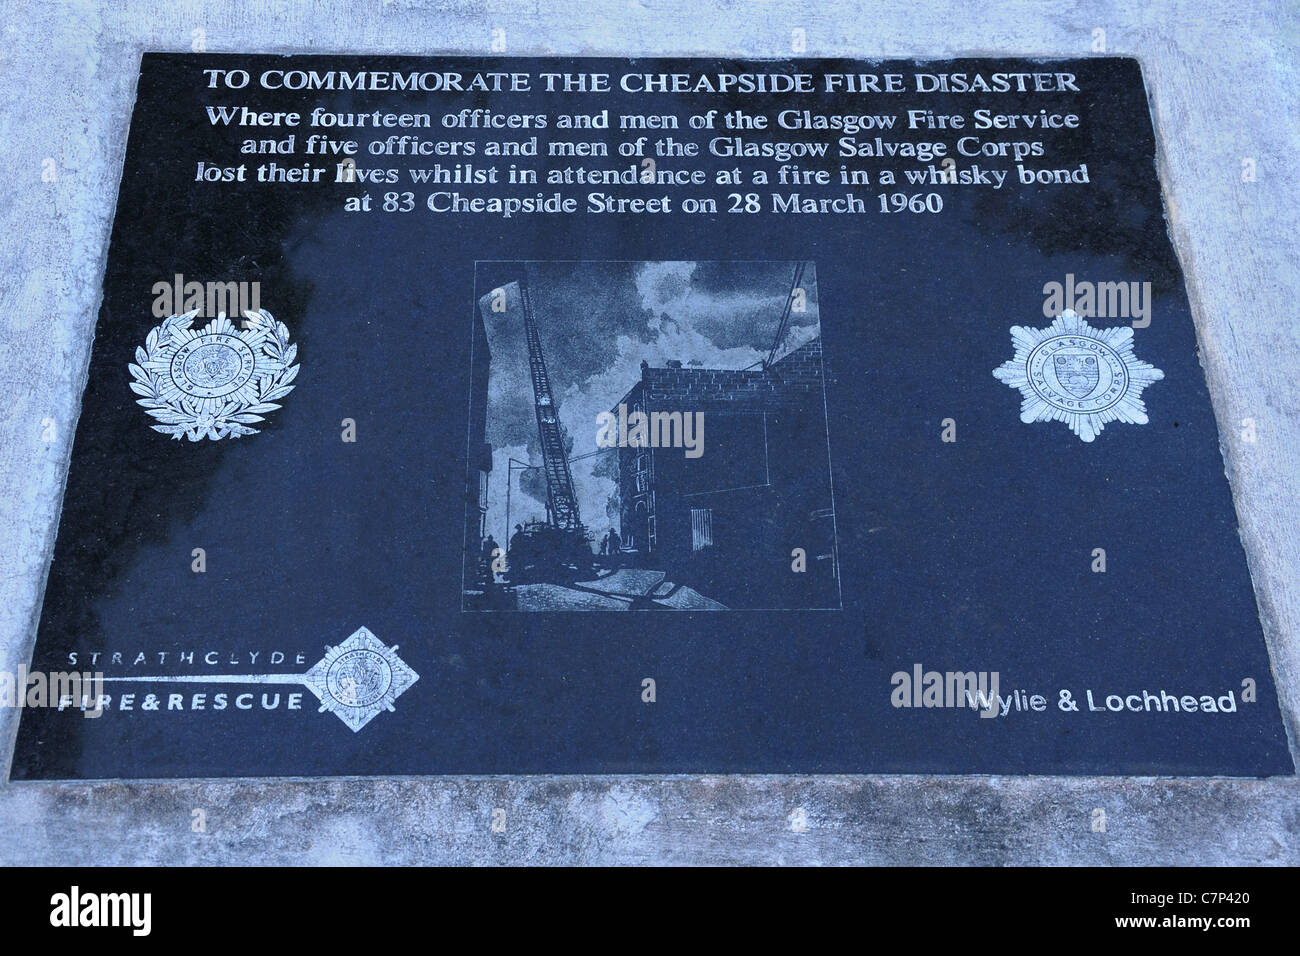 Plaque commemorating the Cheapside Street fire disaster in Glasgow, Scotland, UK, Europe in 1960. - Stock Image